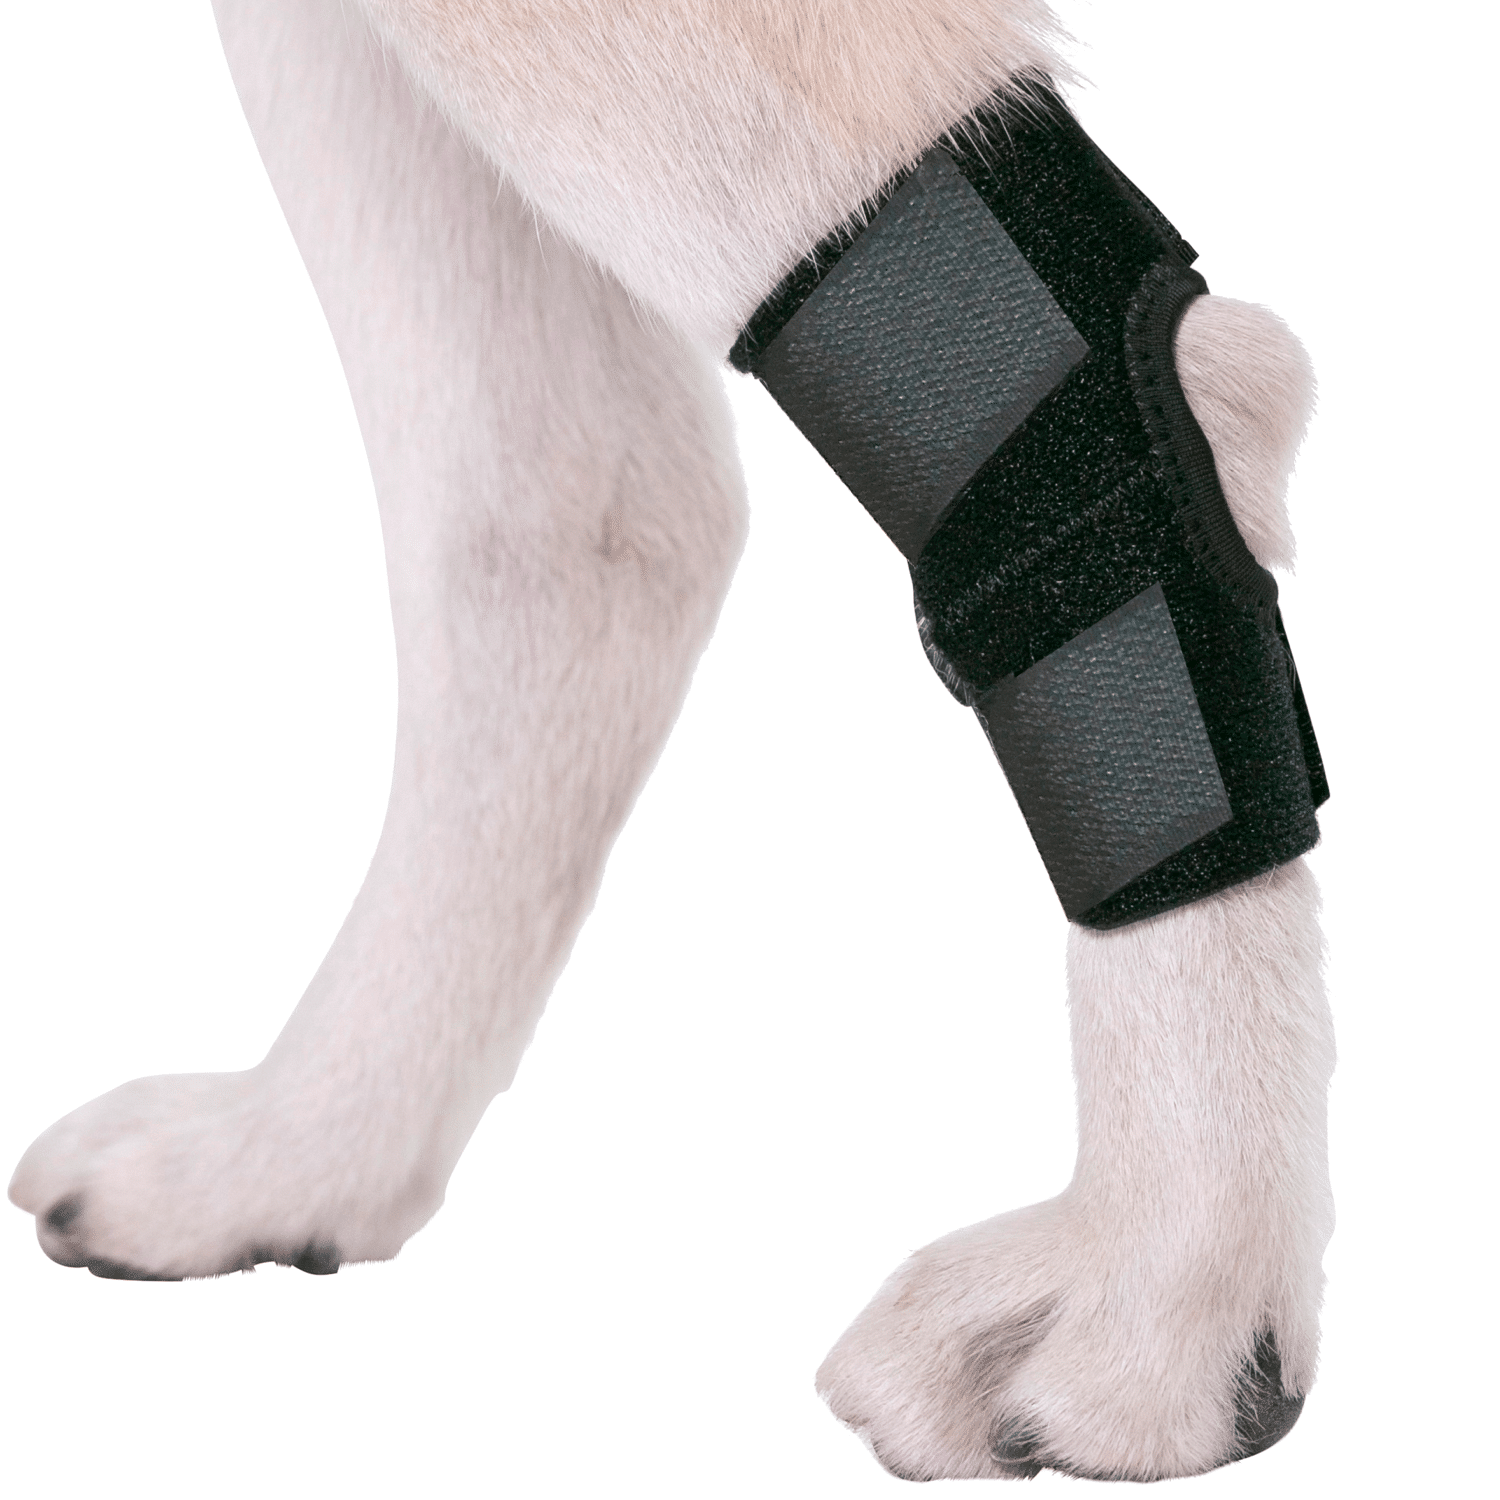 DS003Y hock brace for dog